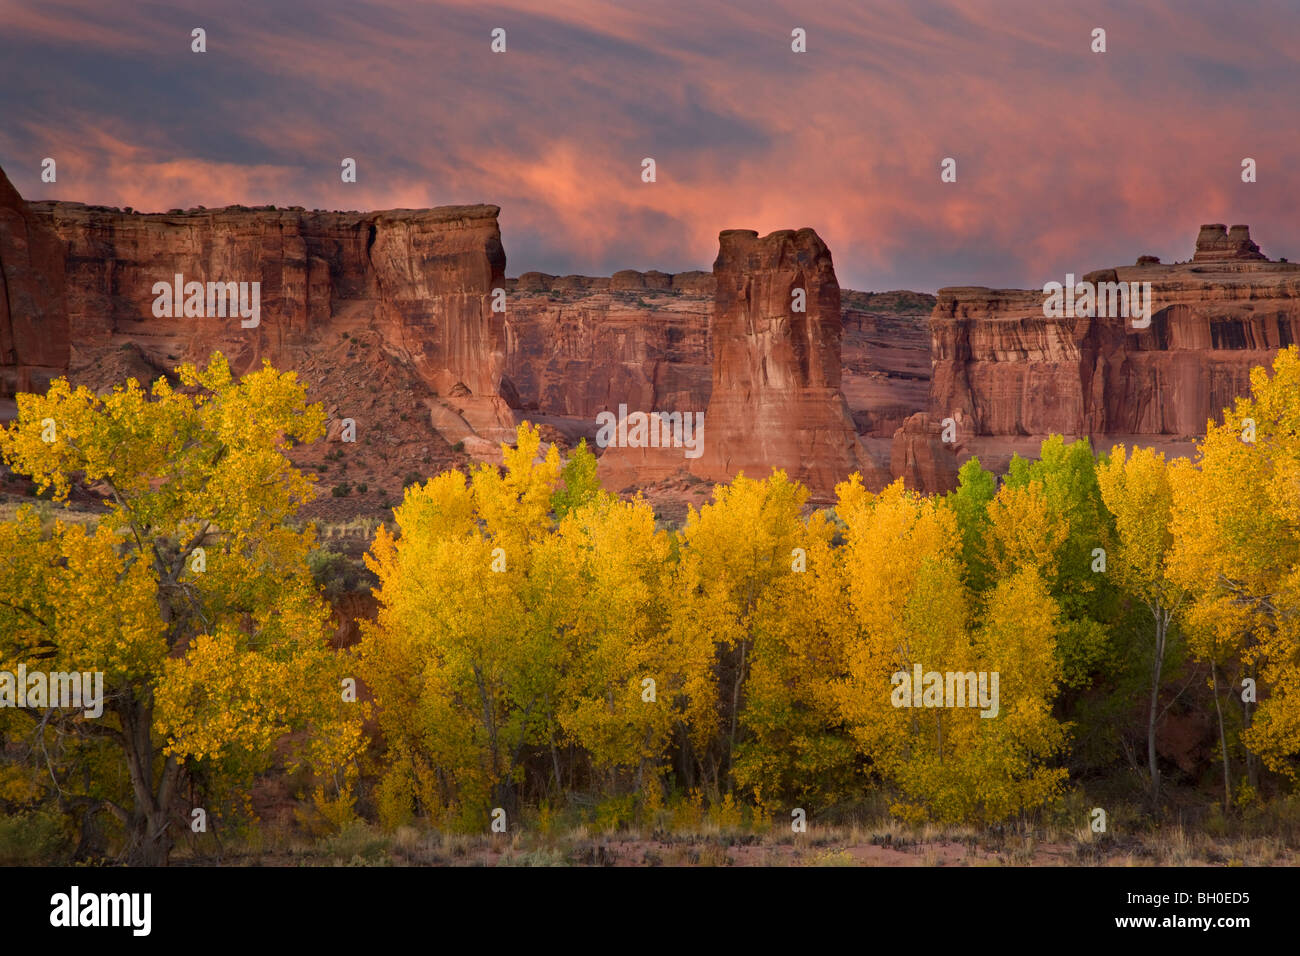 Courthouse Wash, Arches National Park, cerca de Moab, Utah. Imagen De Stock